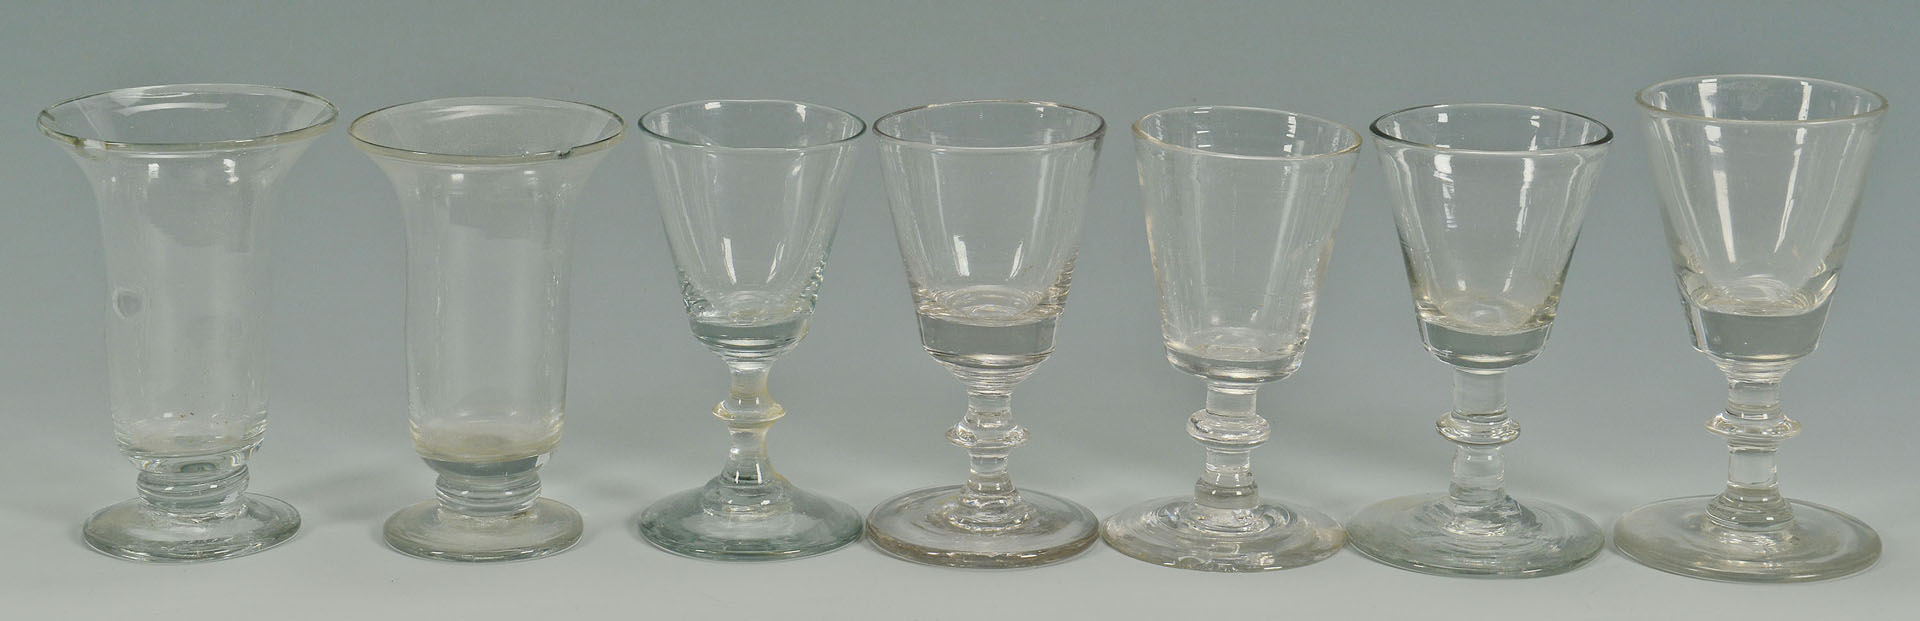 Lot 531: Early Blown Glass Drinking Vessels, 11 items